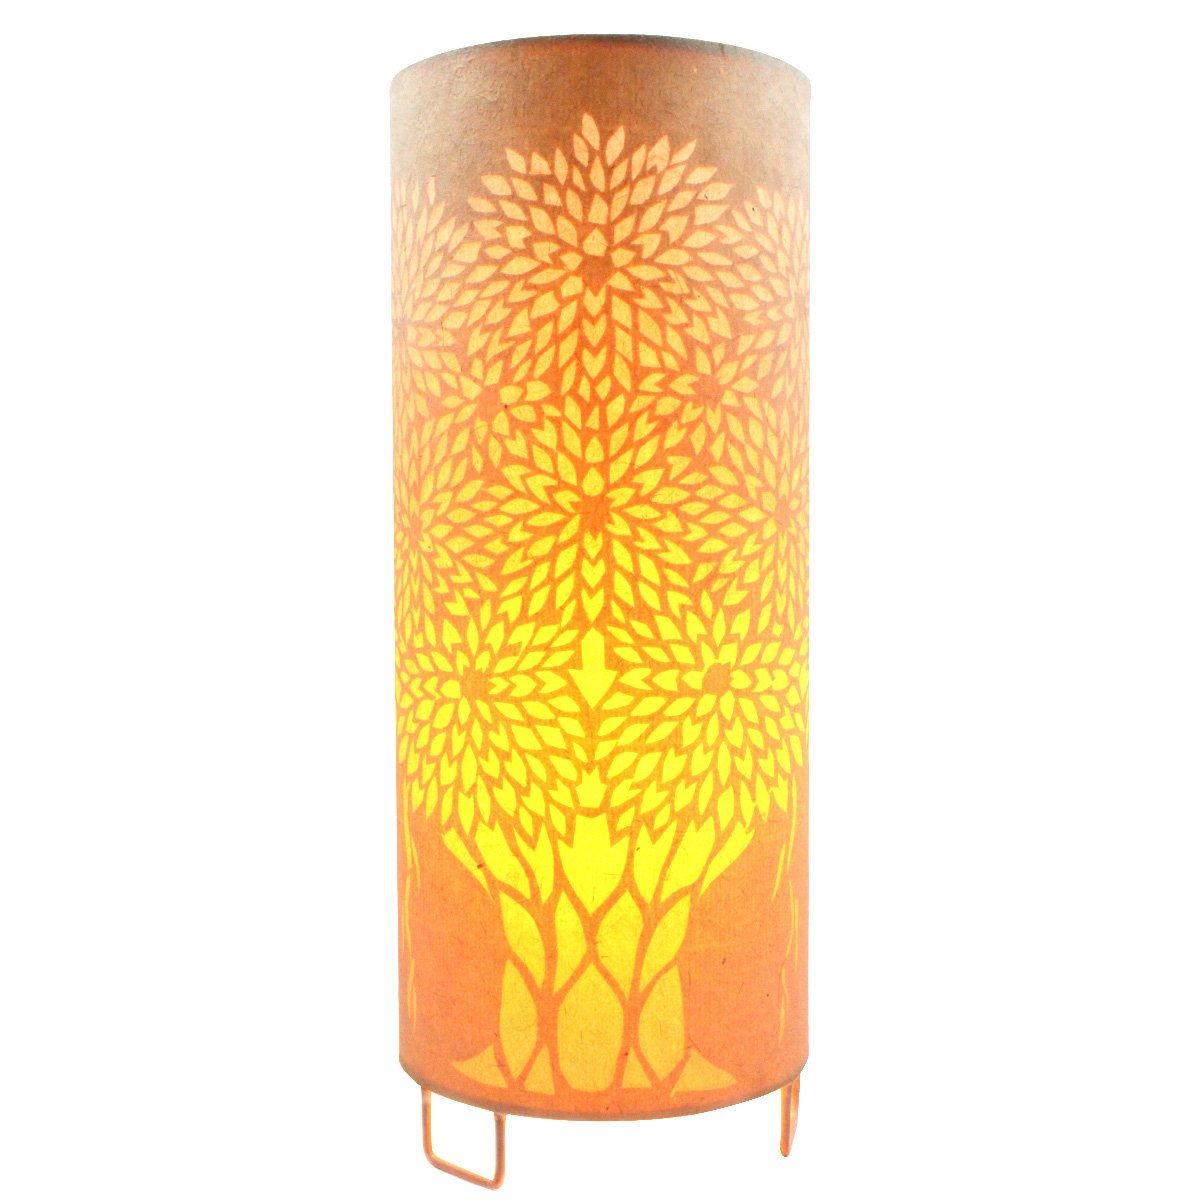 New Indian Classy Sanjhi Art Handmade Electric Decorative Tea Light Night Lamp - Crafted On Handmade Canvas Paper and Steel Base By Awarded Tribal Artisans Of India by India Meets India